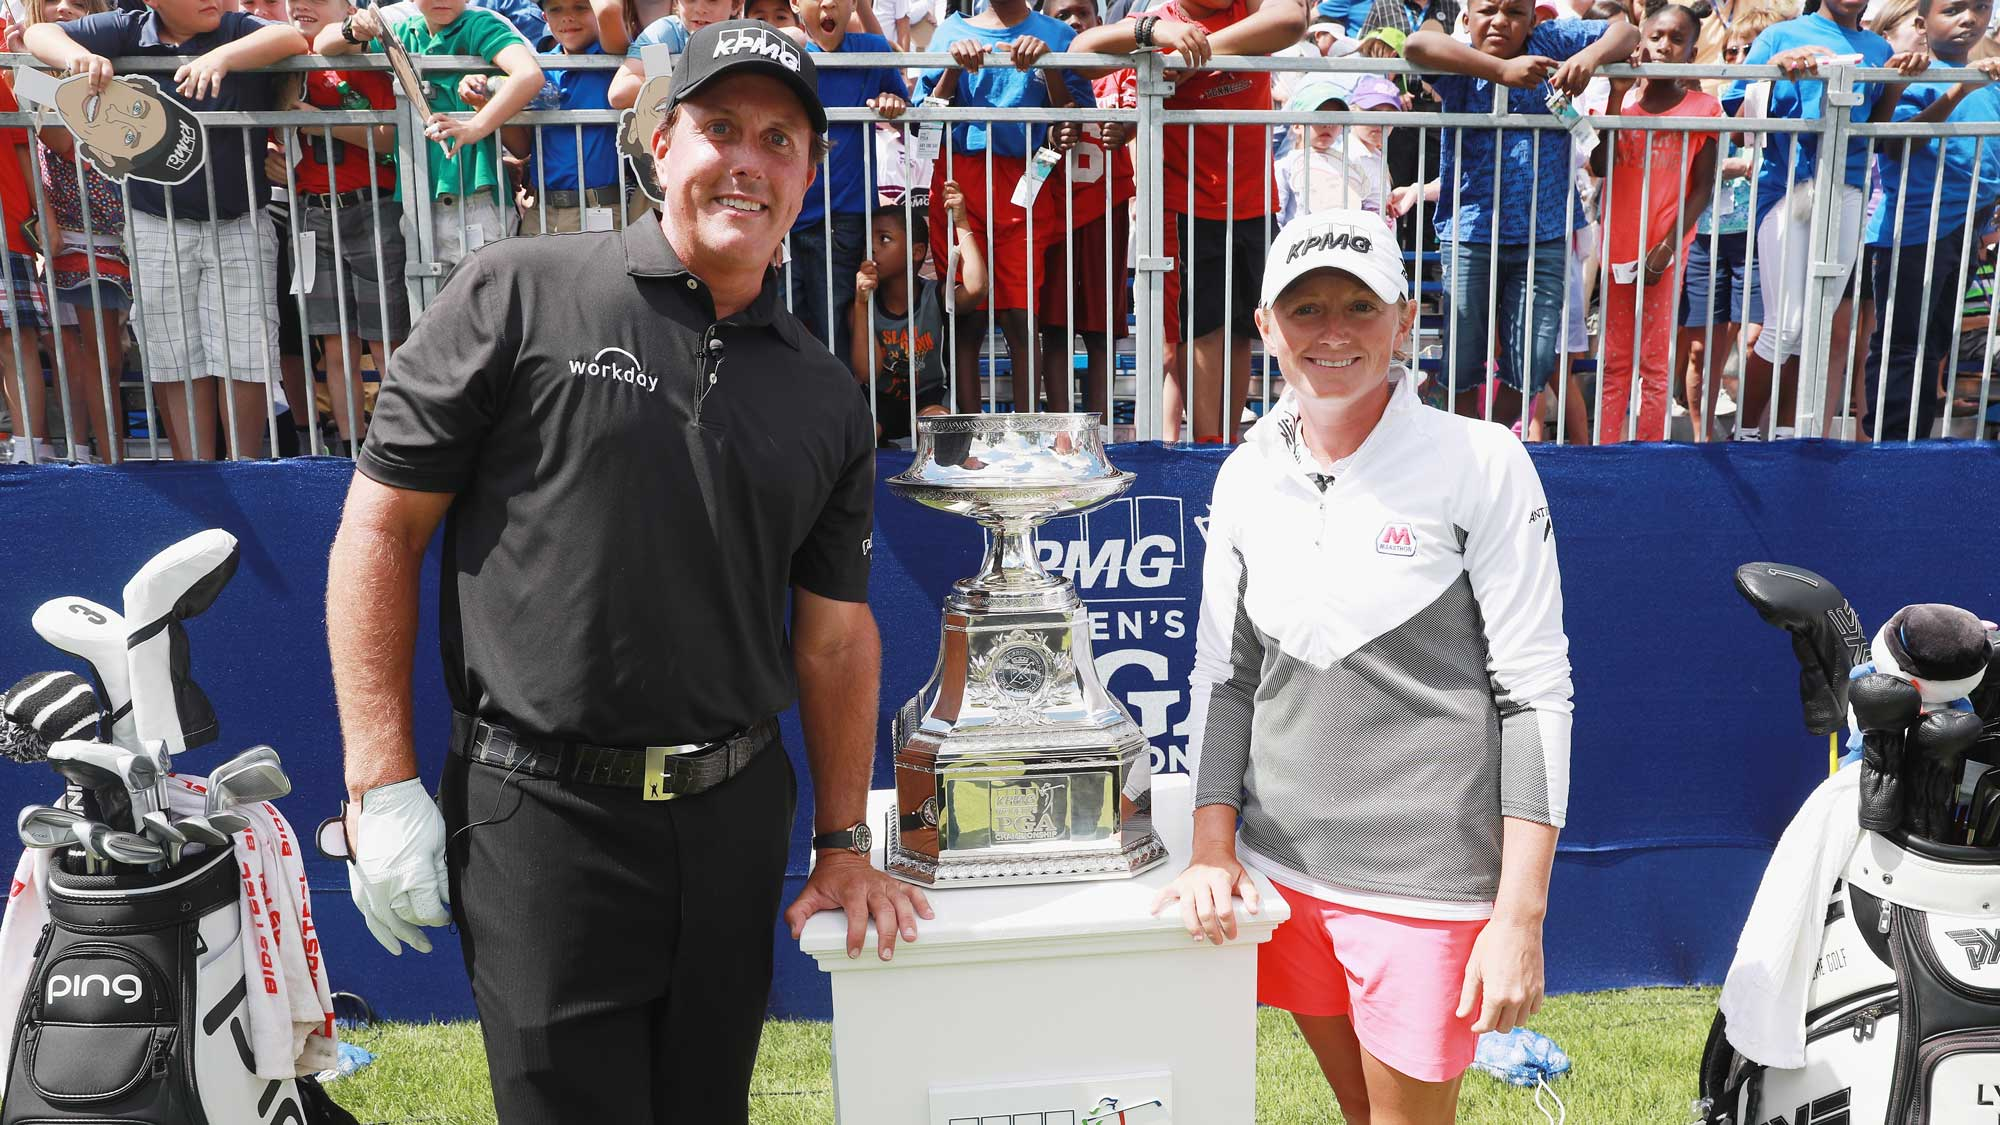 Phil Mickelson (L) and Stacy Lewis pose together during a a skills challenge prior to the start of the 2017 KPMG Women's PGA Championship